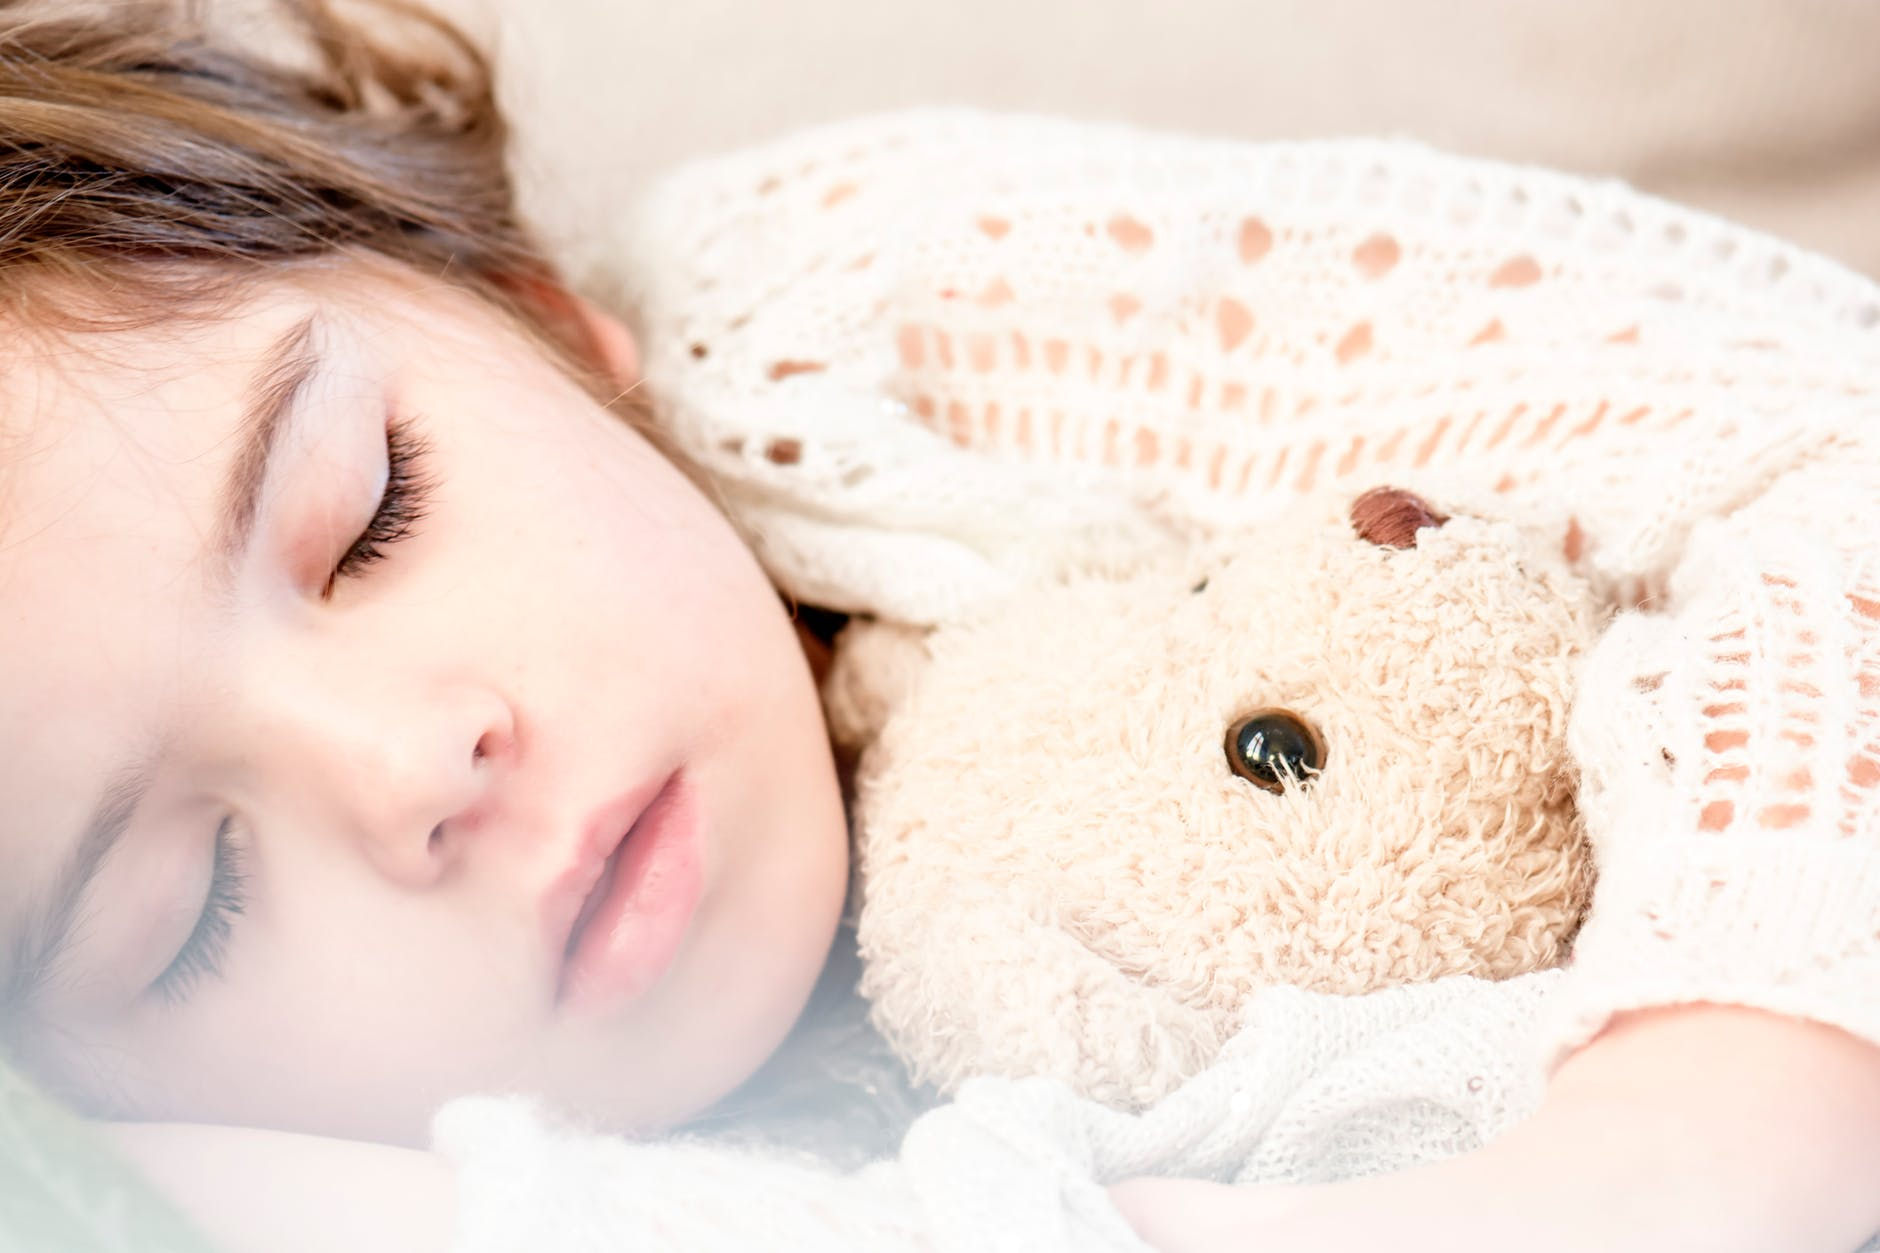 Smart Parenting: How Does This Bedwetting Alarm Work?